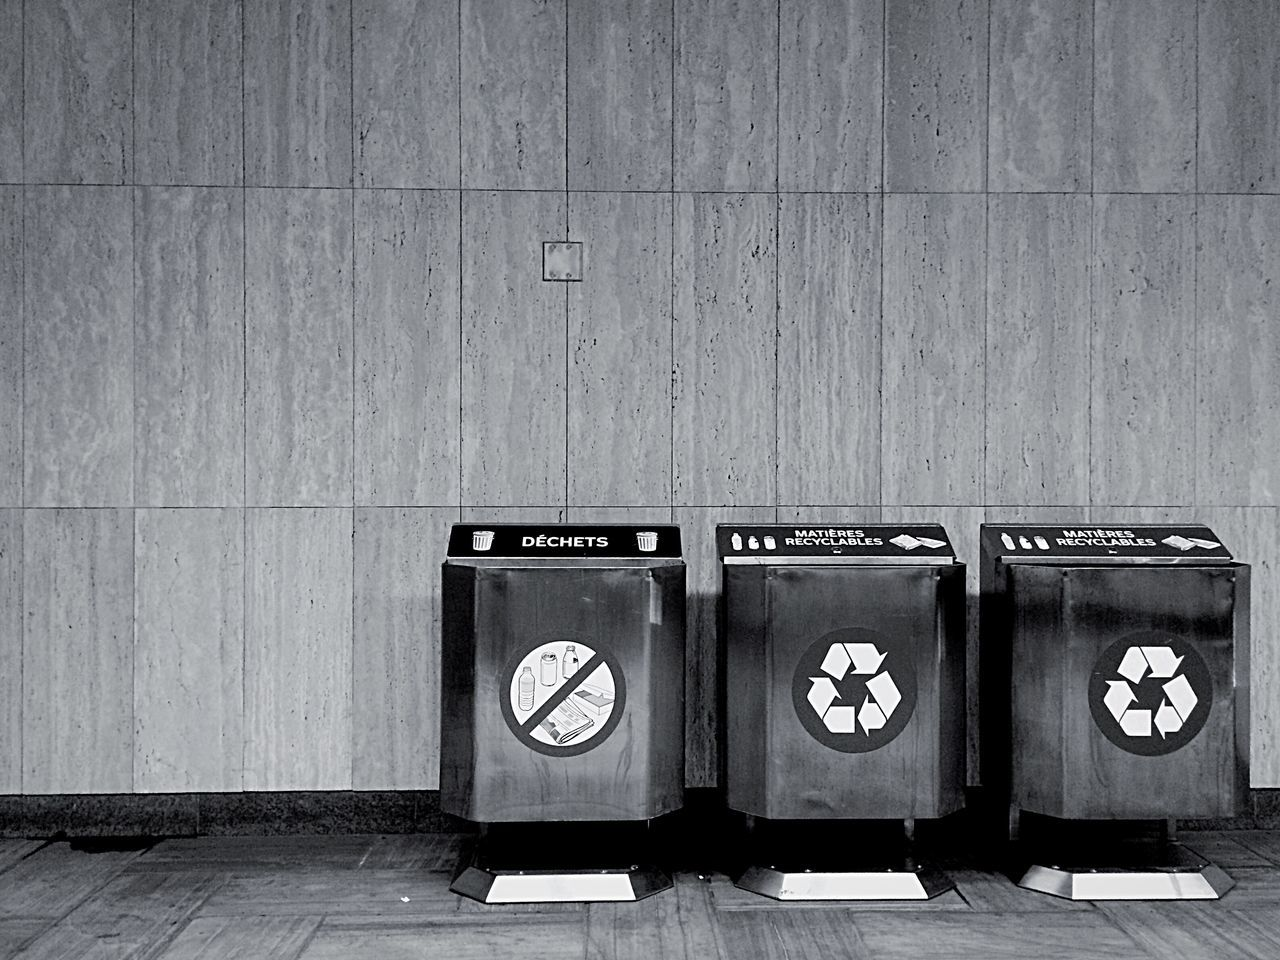 Any kind of means to help the Environment Gotta Stay Clean Smart Simplicity Blackandwhite Monochrome Recycle Clean City Minimal Simplicity